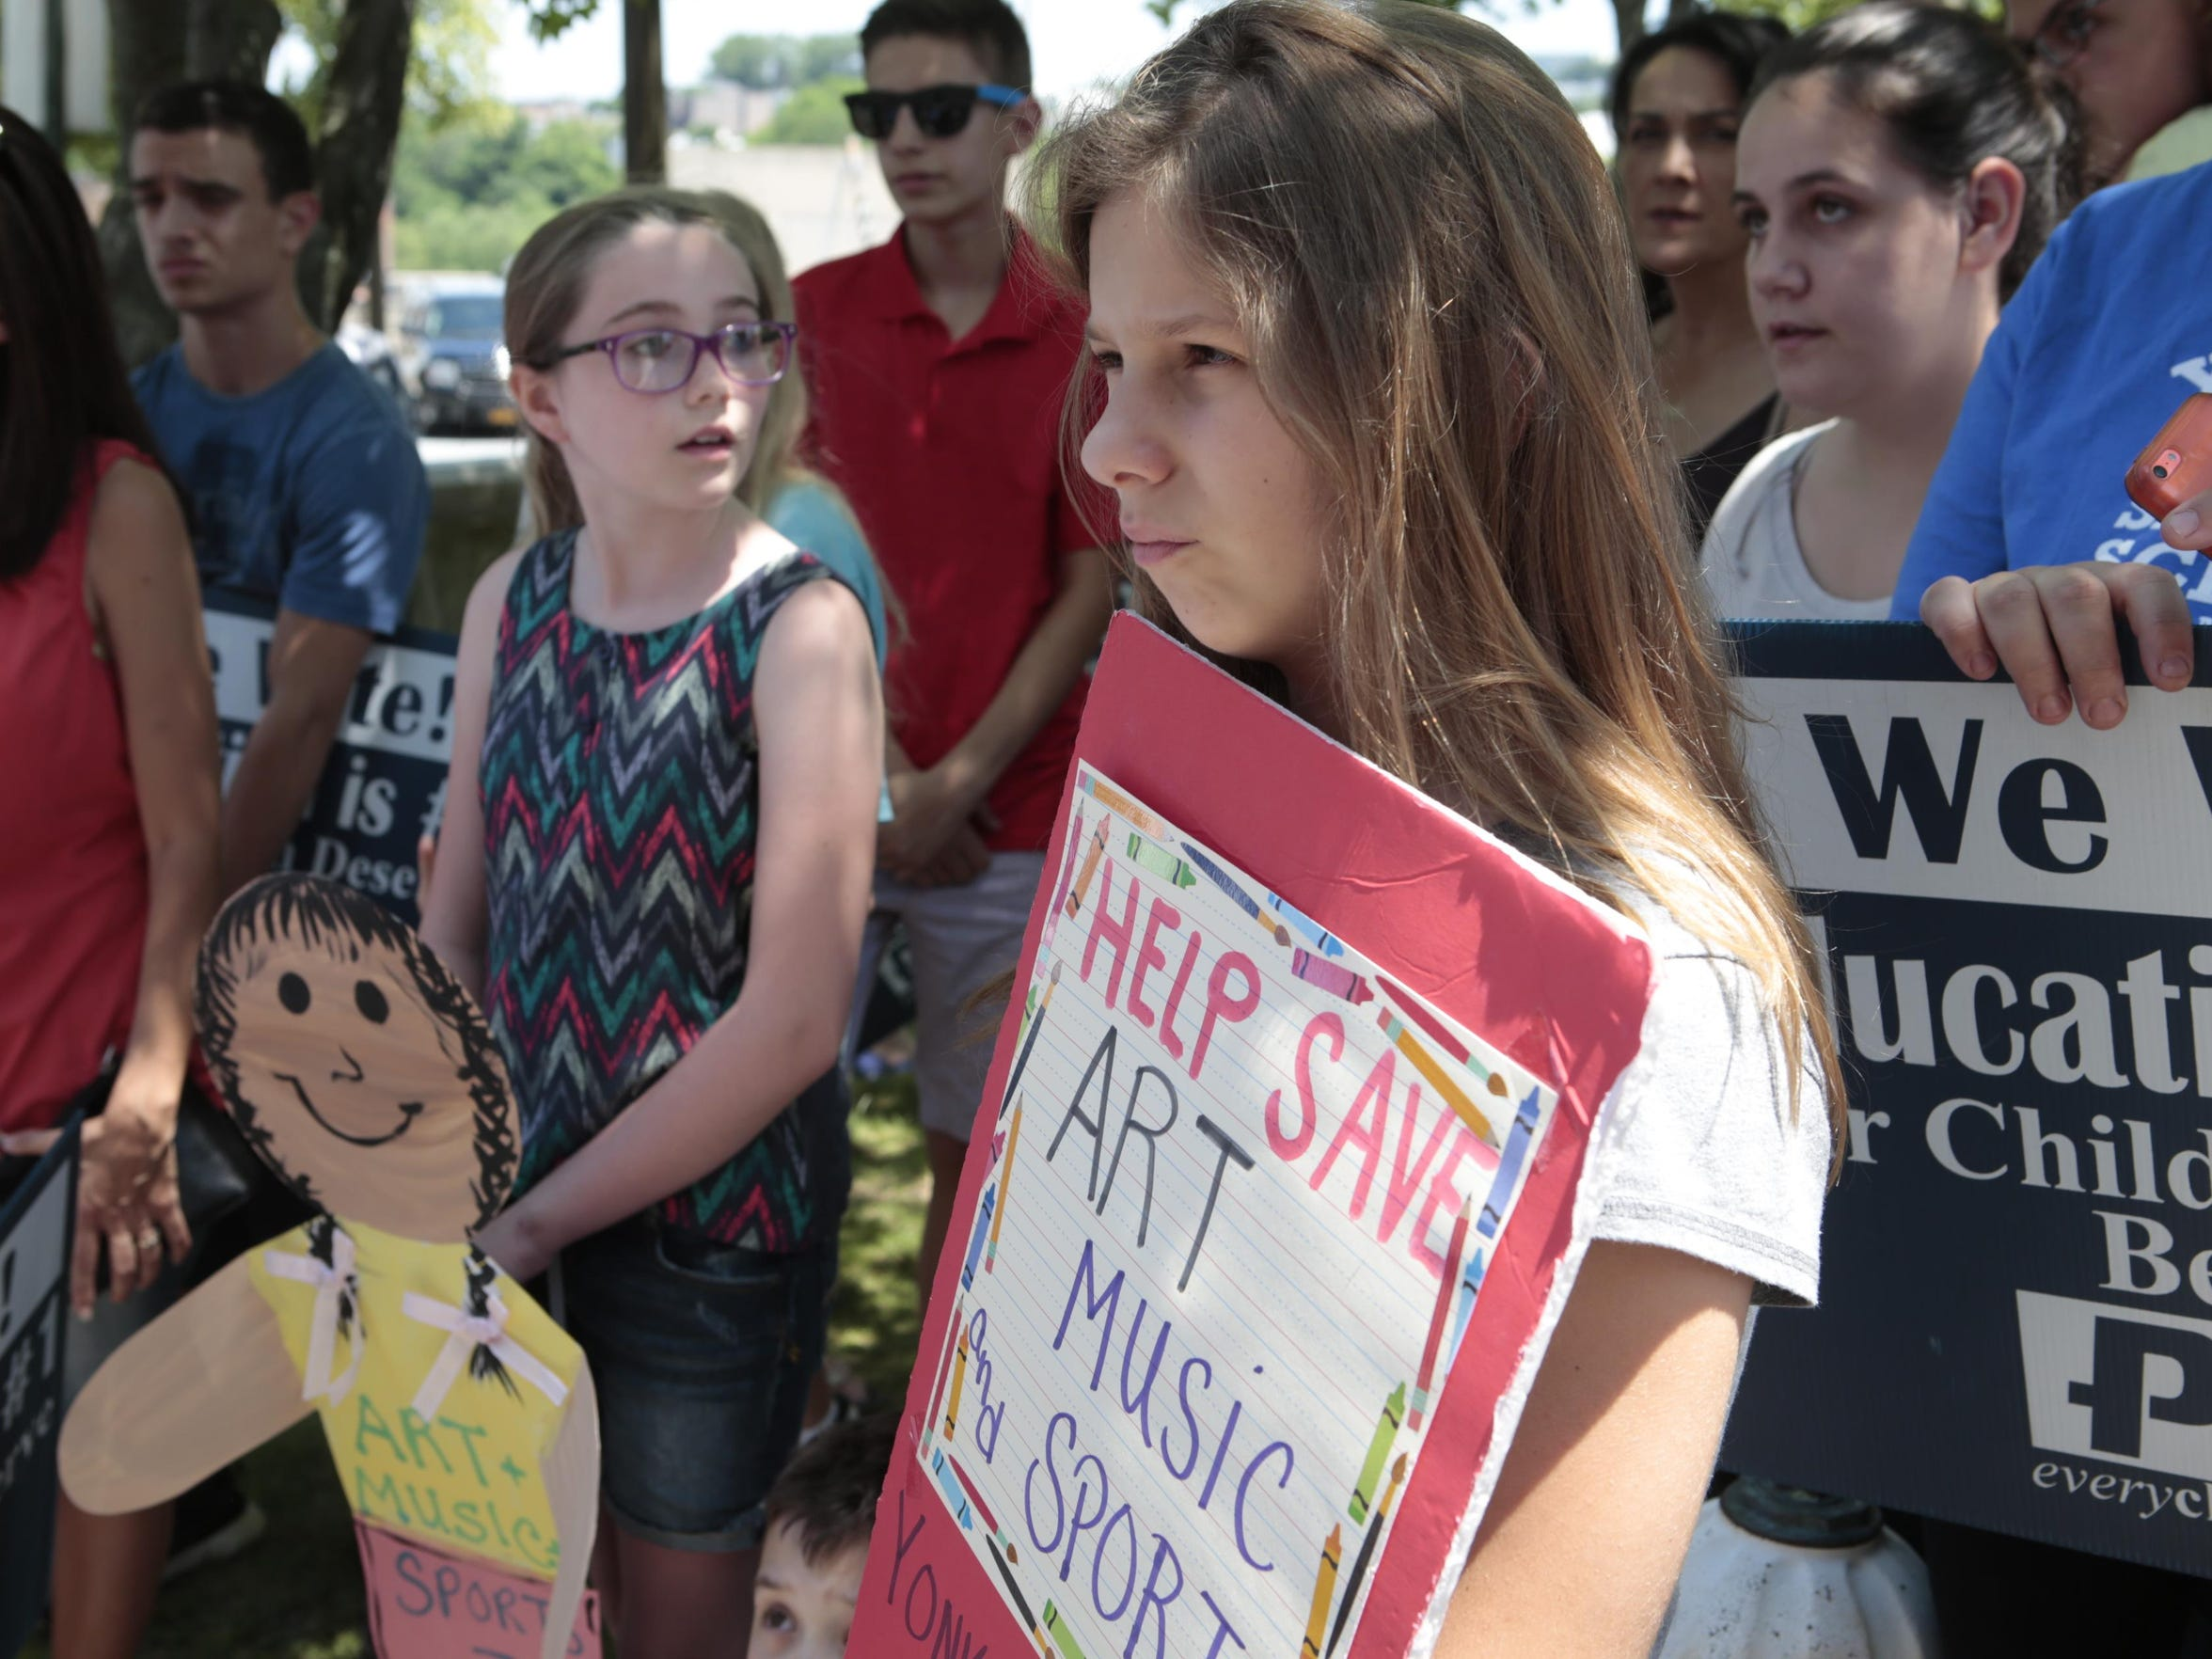 Emily Djonbalaj, of Yonkers, joined demonstrators who